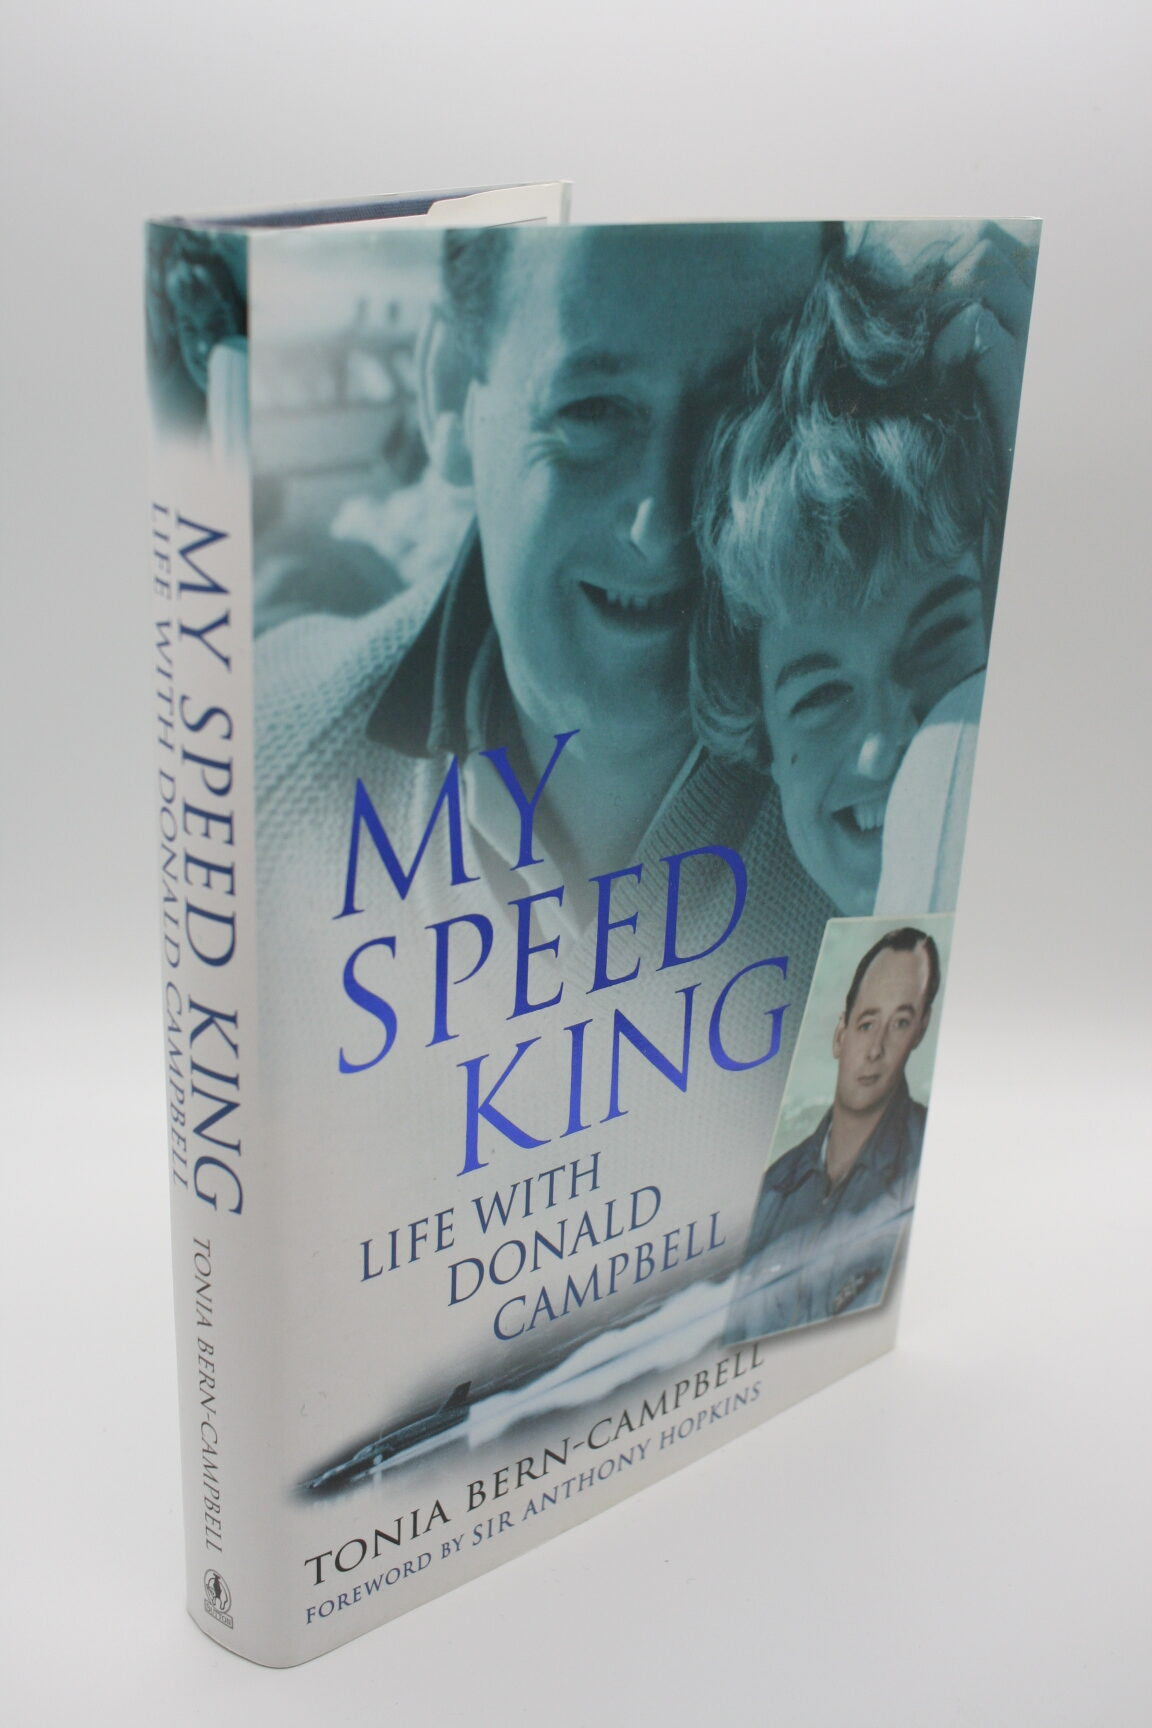 My Speed King: Life with Donald Campbell - Tonia Bern-Campbell